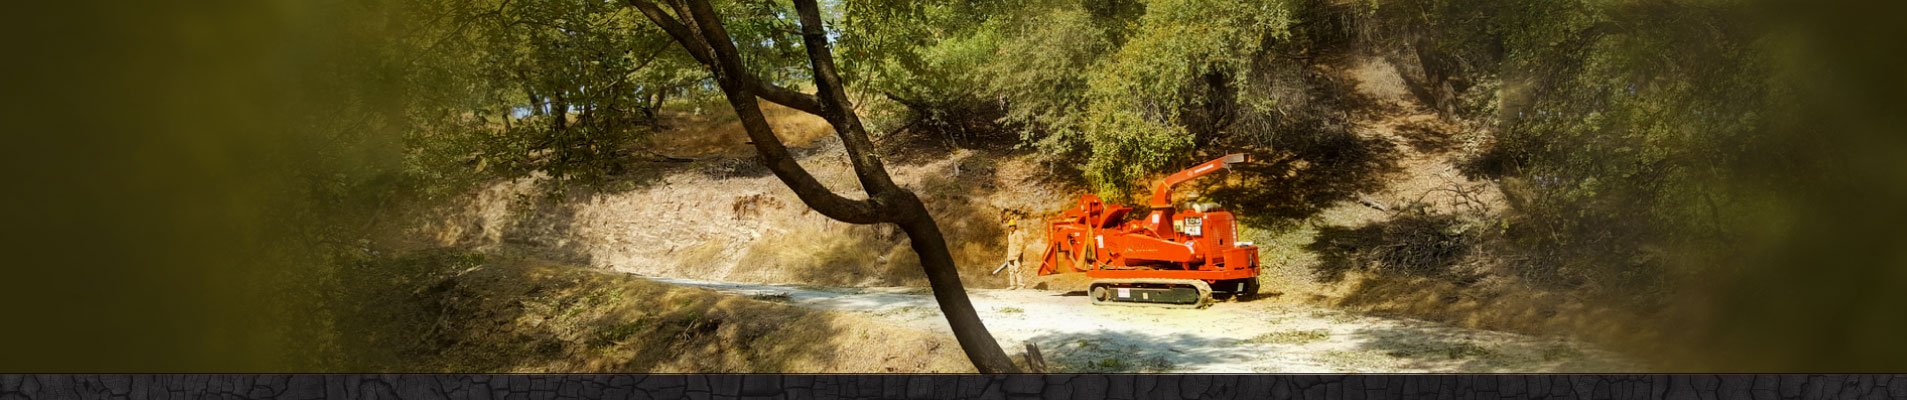 Photo demonstrations roadside clearing work in Amador County.